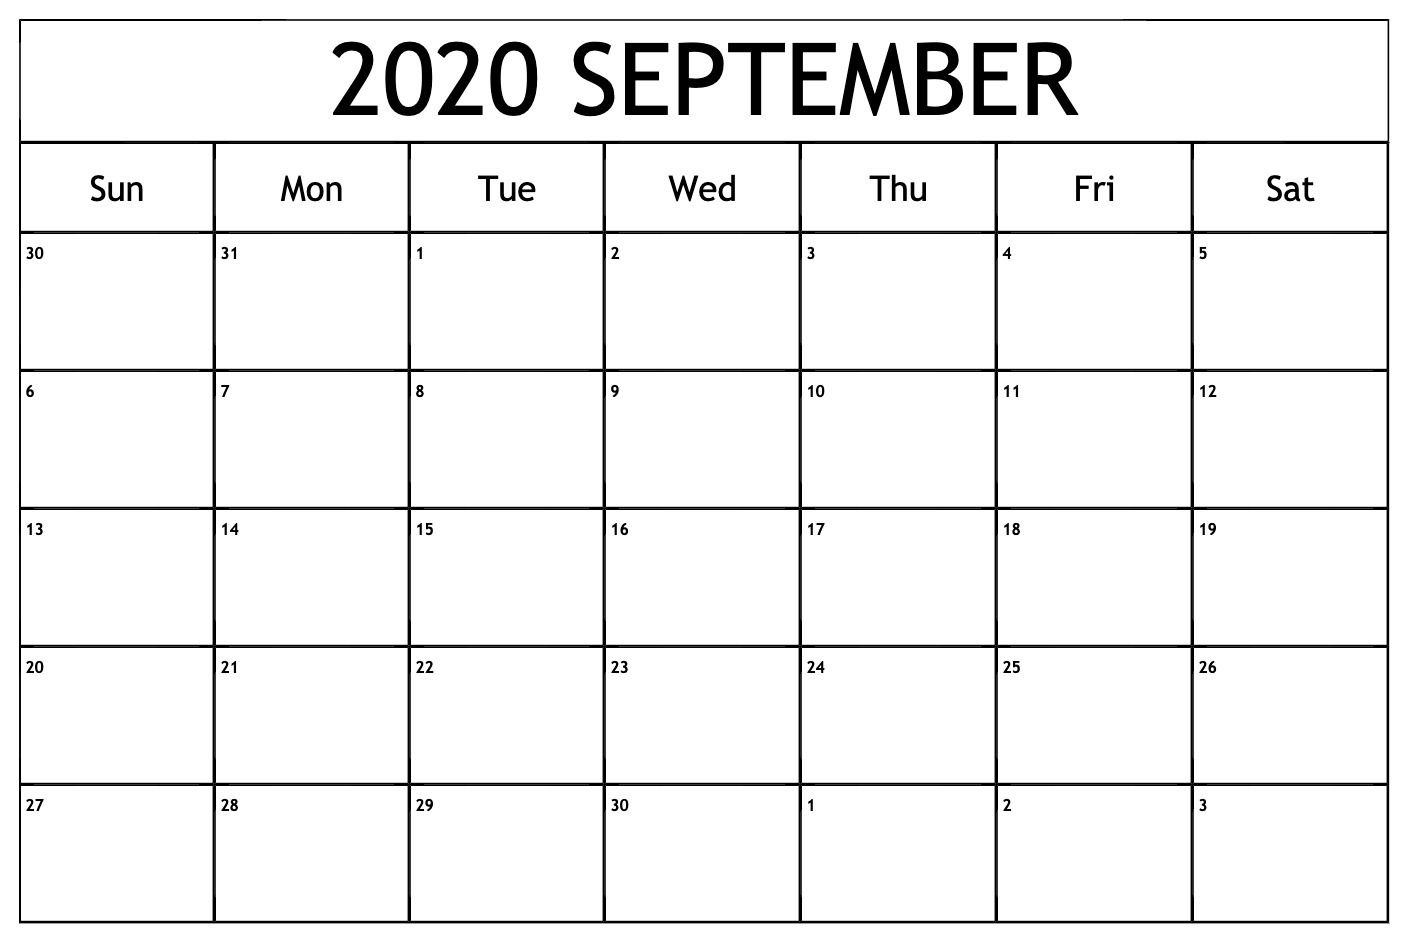 September 2020 Calendar Pdf | September Calendar, Calendar throughout Free Printable Monthly Calendar September 2020